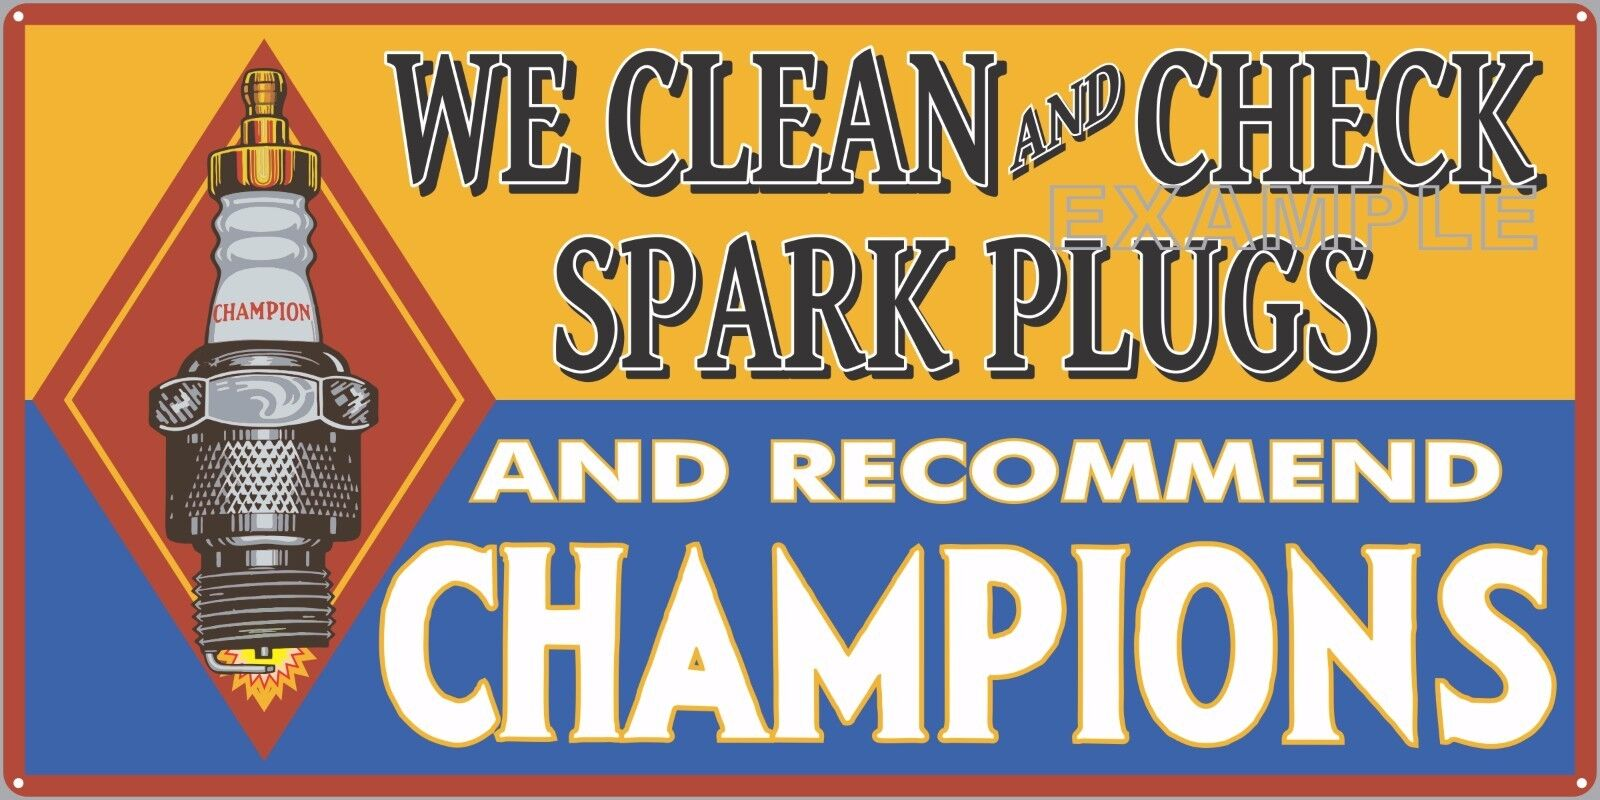 CHAMPION SPARK PLUGS OLD SIGN REMAKE ALUMINUM IN OUTDOOR 12  X 24  18  X 36